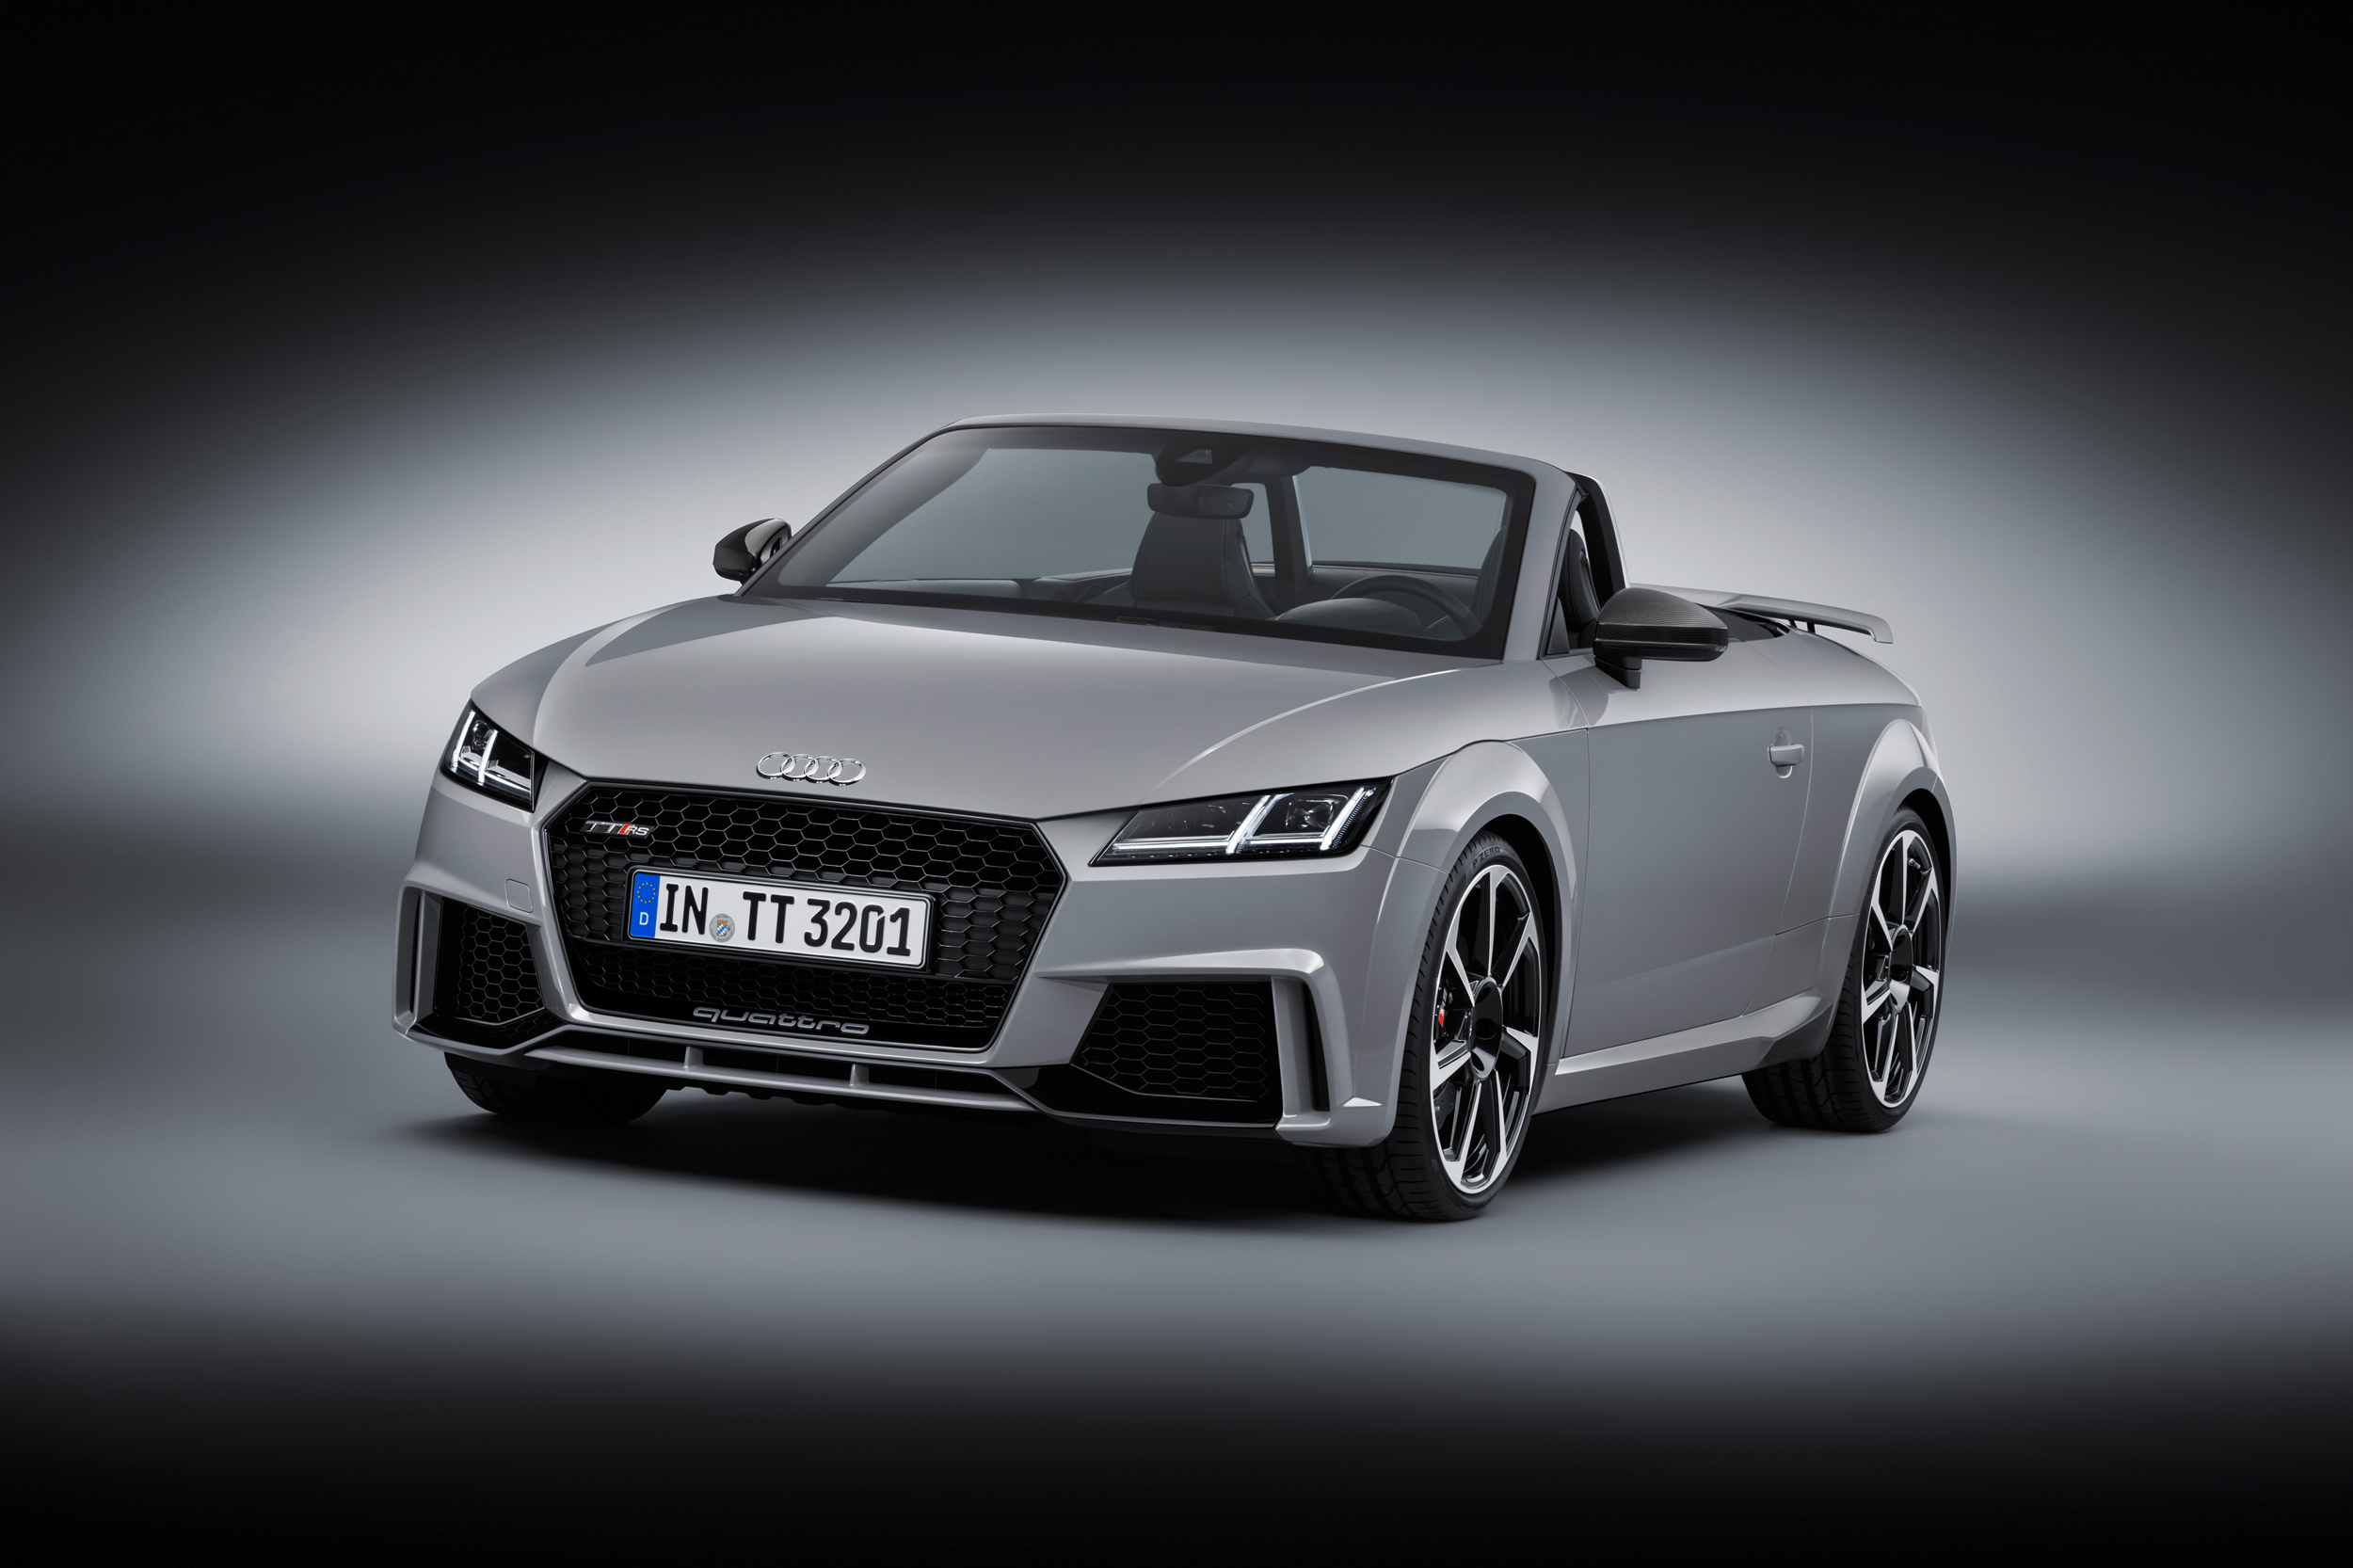 Audi Tt Rs Roadster Shows Nardo Gray Paint At Audi Forum Ingolstadt furthermore Wood Boot Rack Mx further Audi Tt Rs Roadster Rear Three Quarter In Motion together with Bike Racks June moreover Audi Ttrs Conv. on 2016 audi tt roadster convertible